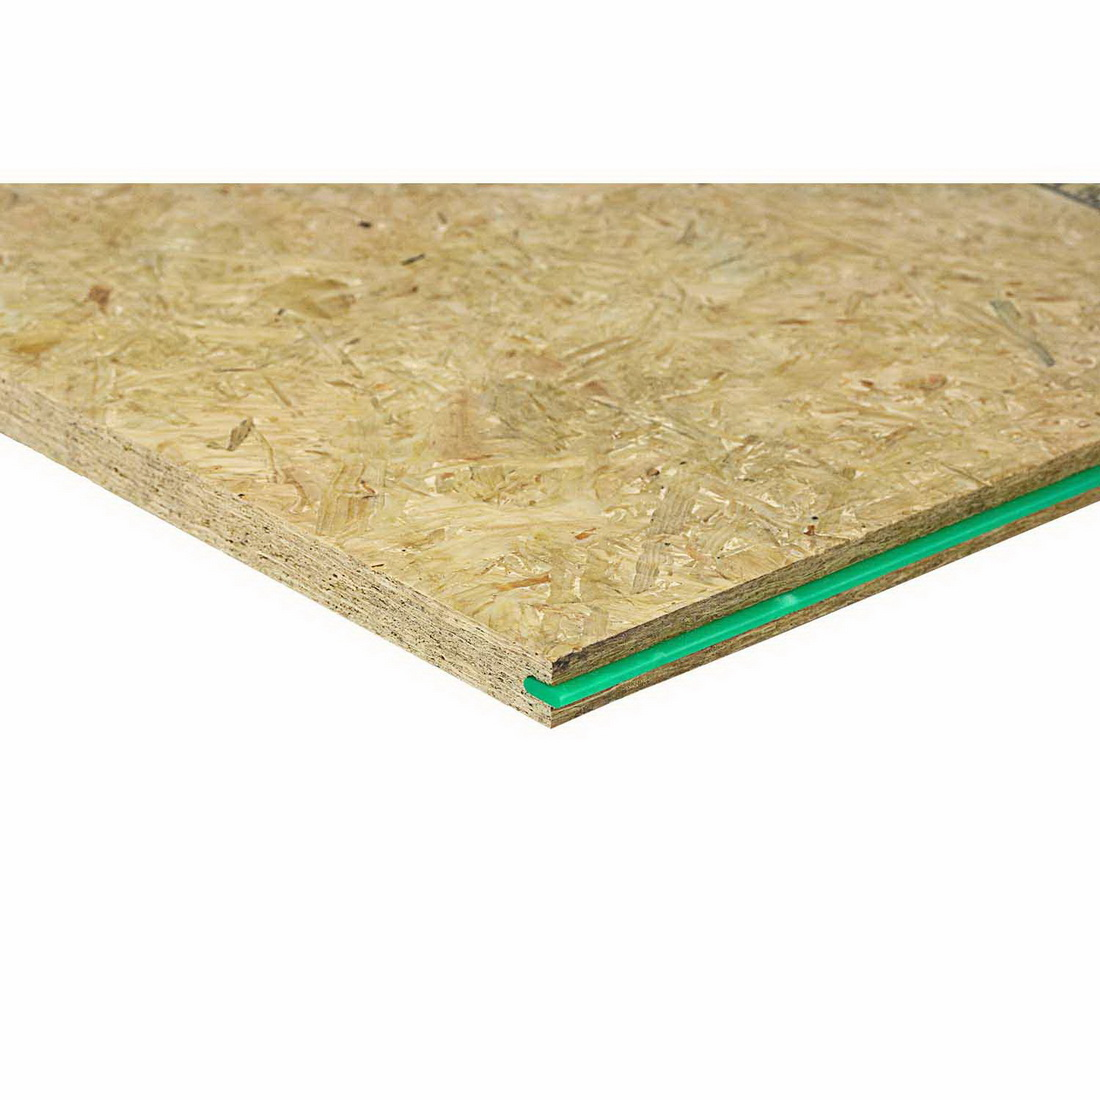 Strandfloor 3600x1200x20mm H3.1 Tongue & Groove High Density Reconstituted Wood Panel